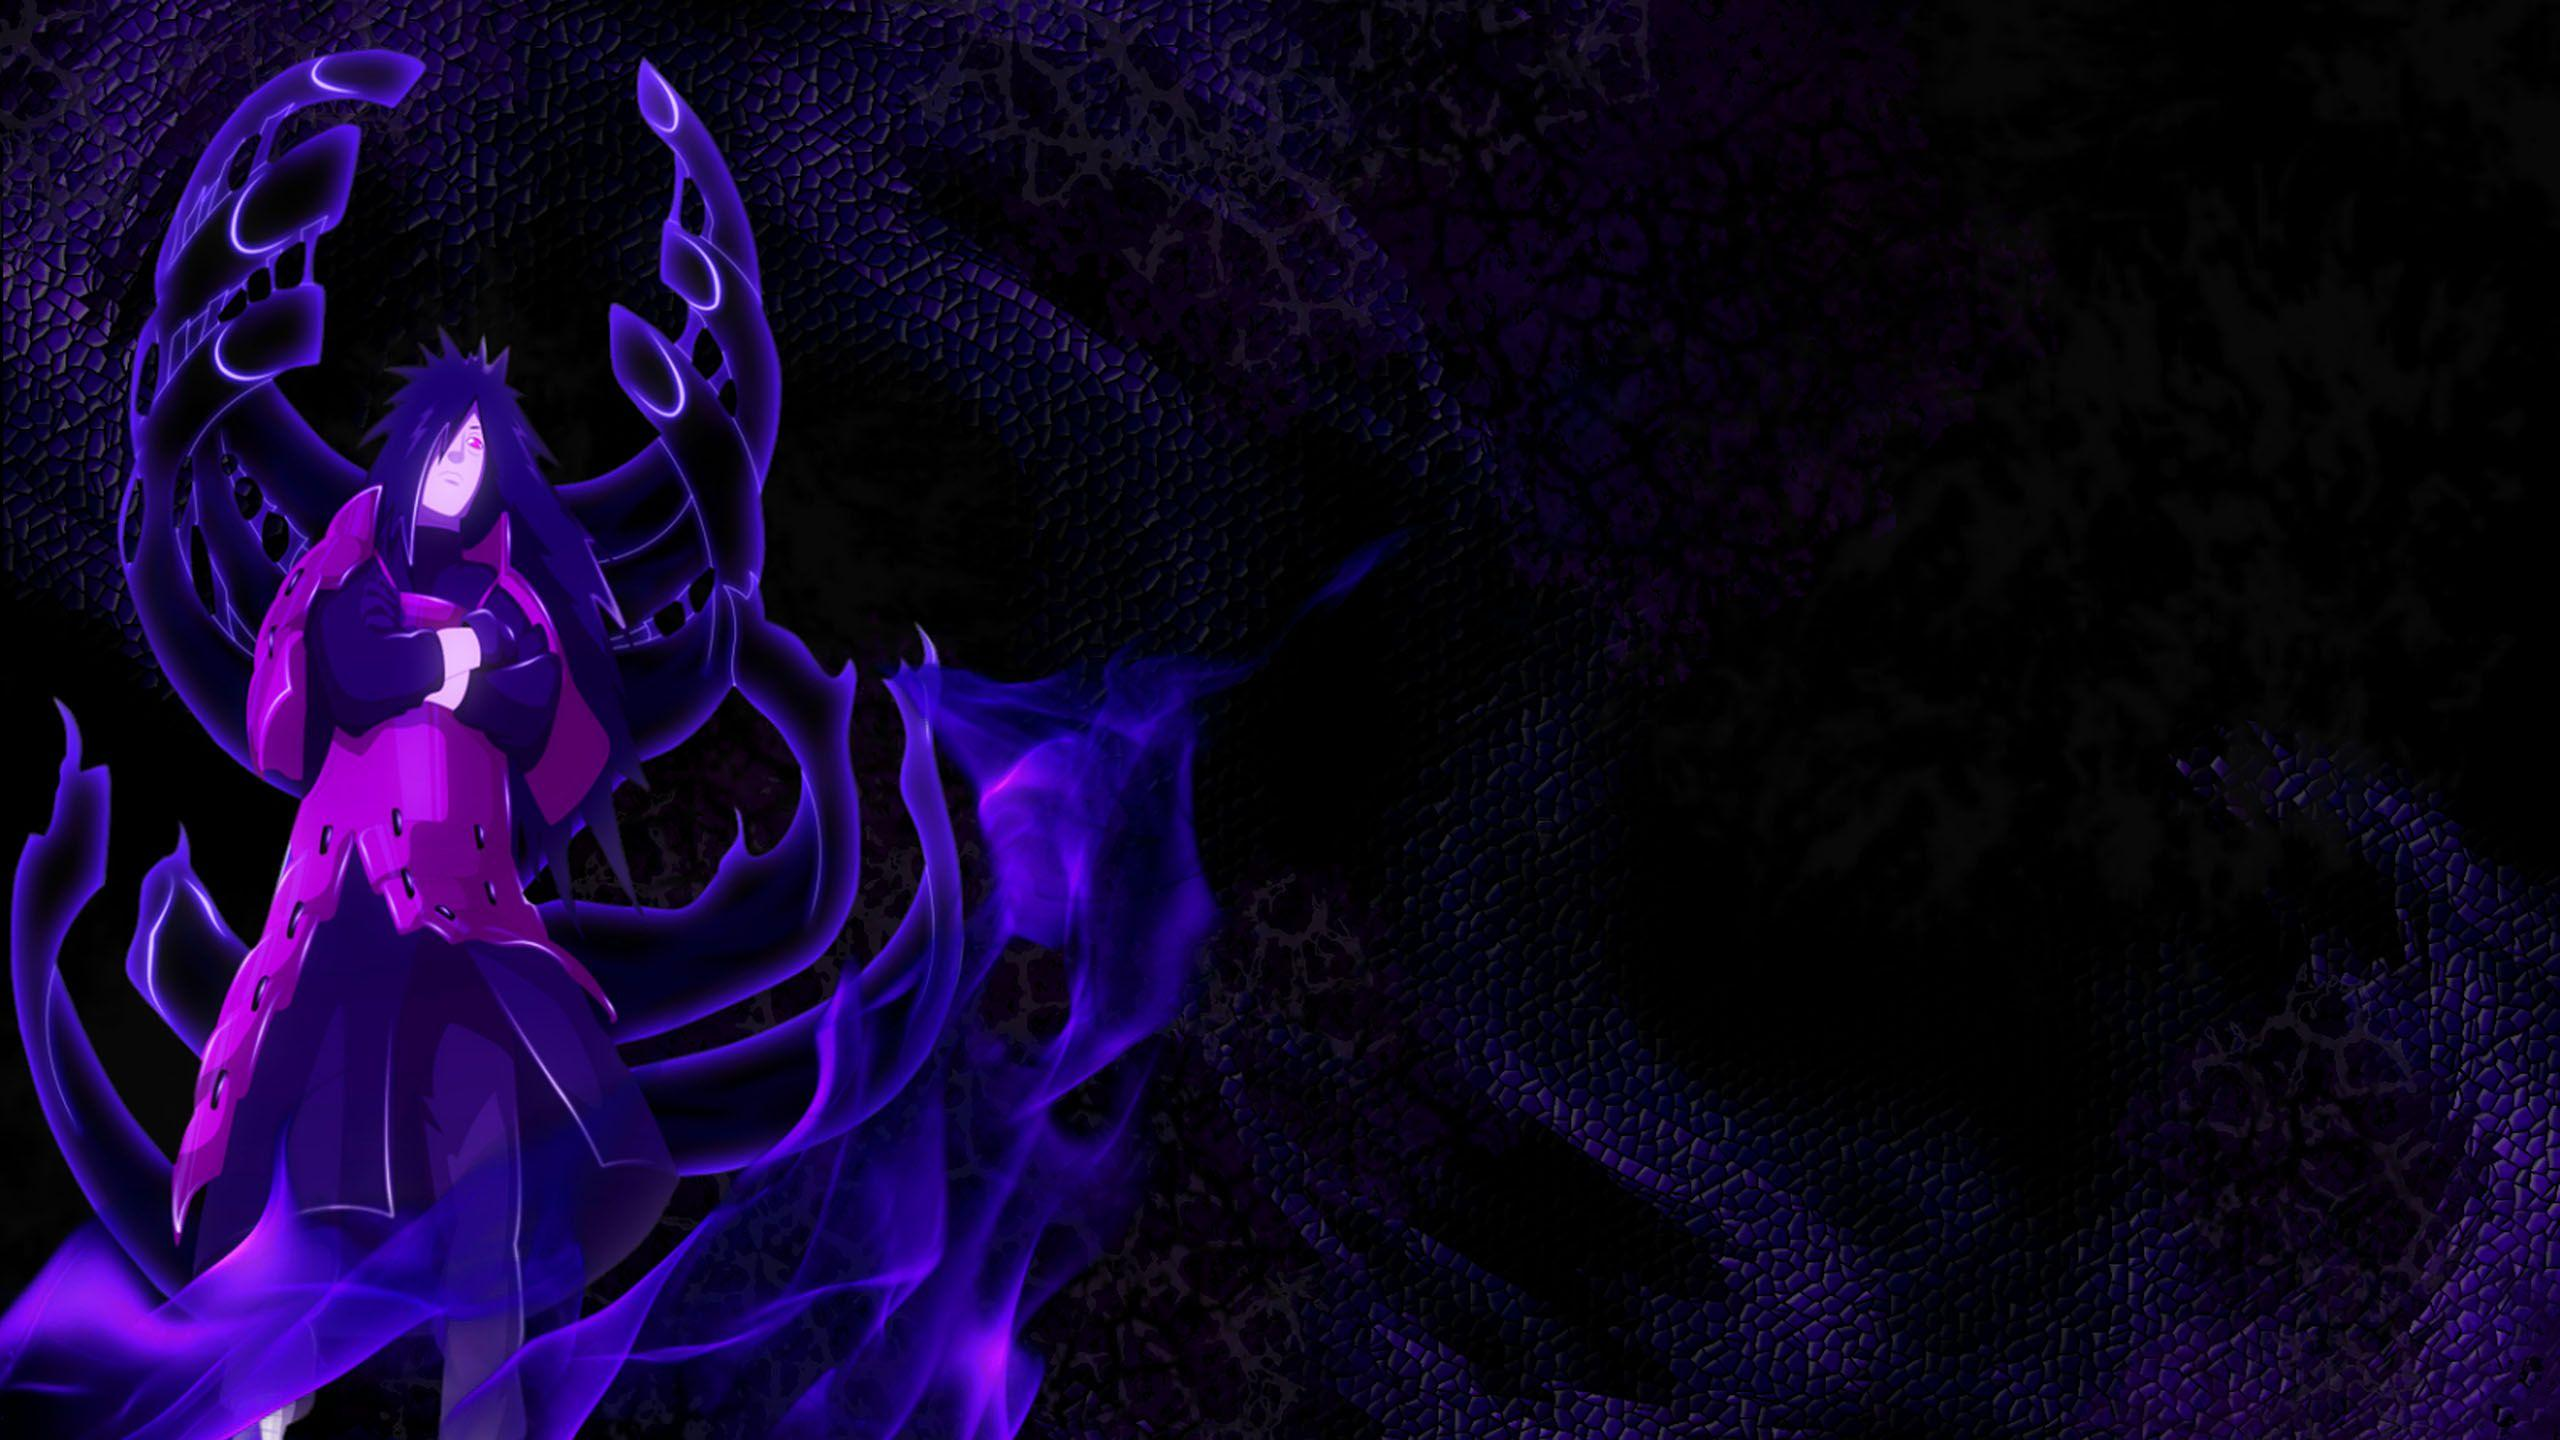 Itachi Uchiha Susanoo Wallpapers HD - Wallpaper Cave